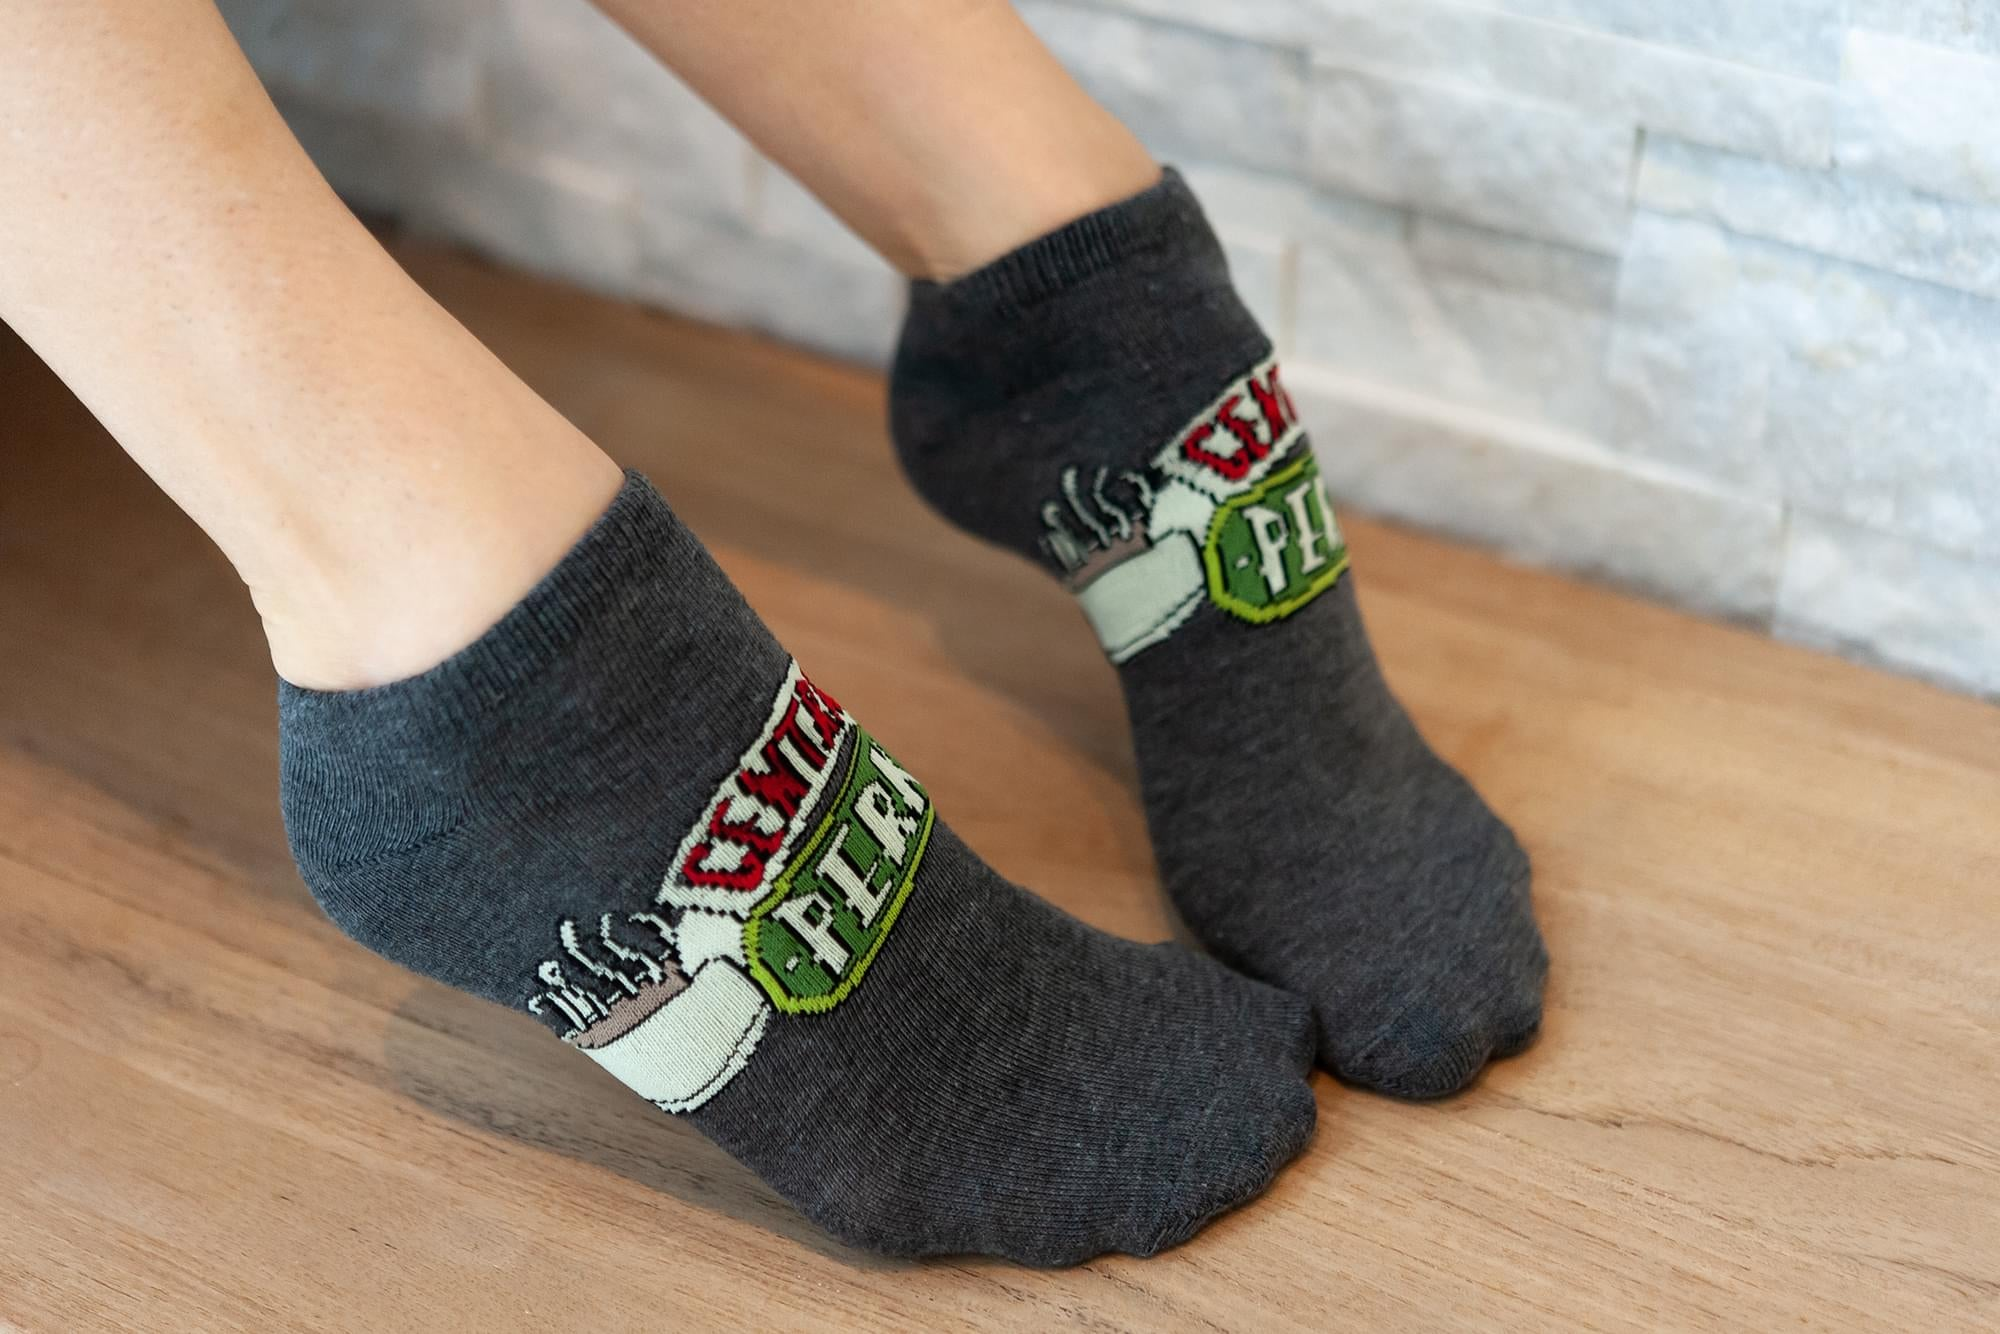 Friends TV Series Themed Quotes Novelty Ankle Socks for Men & Women - 5 Pairs